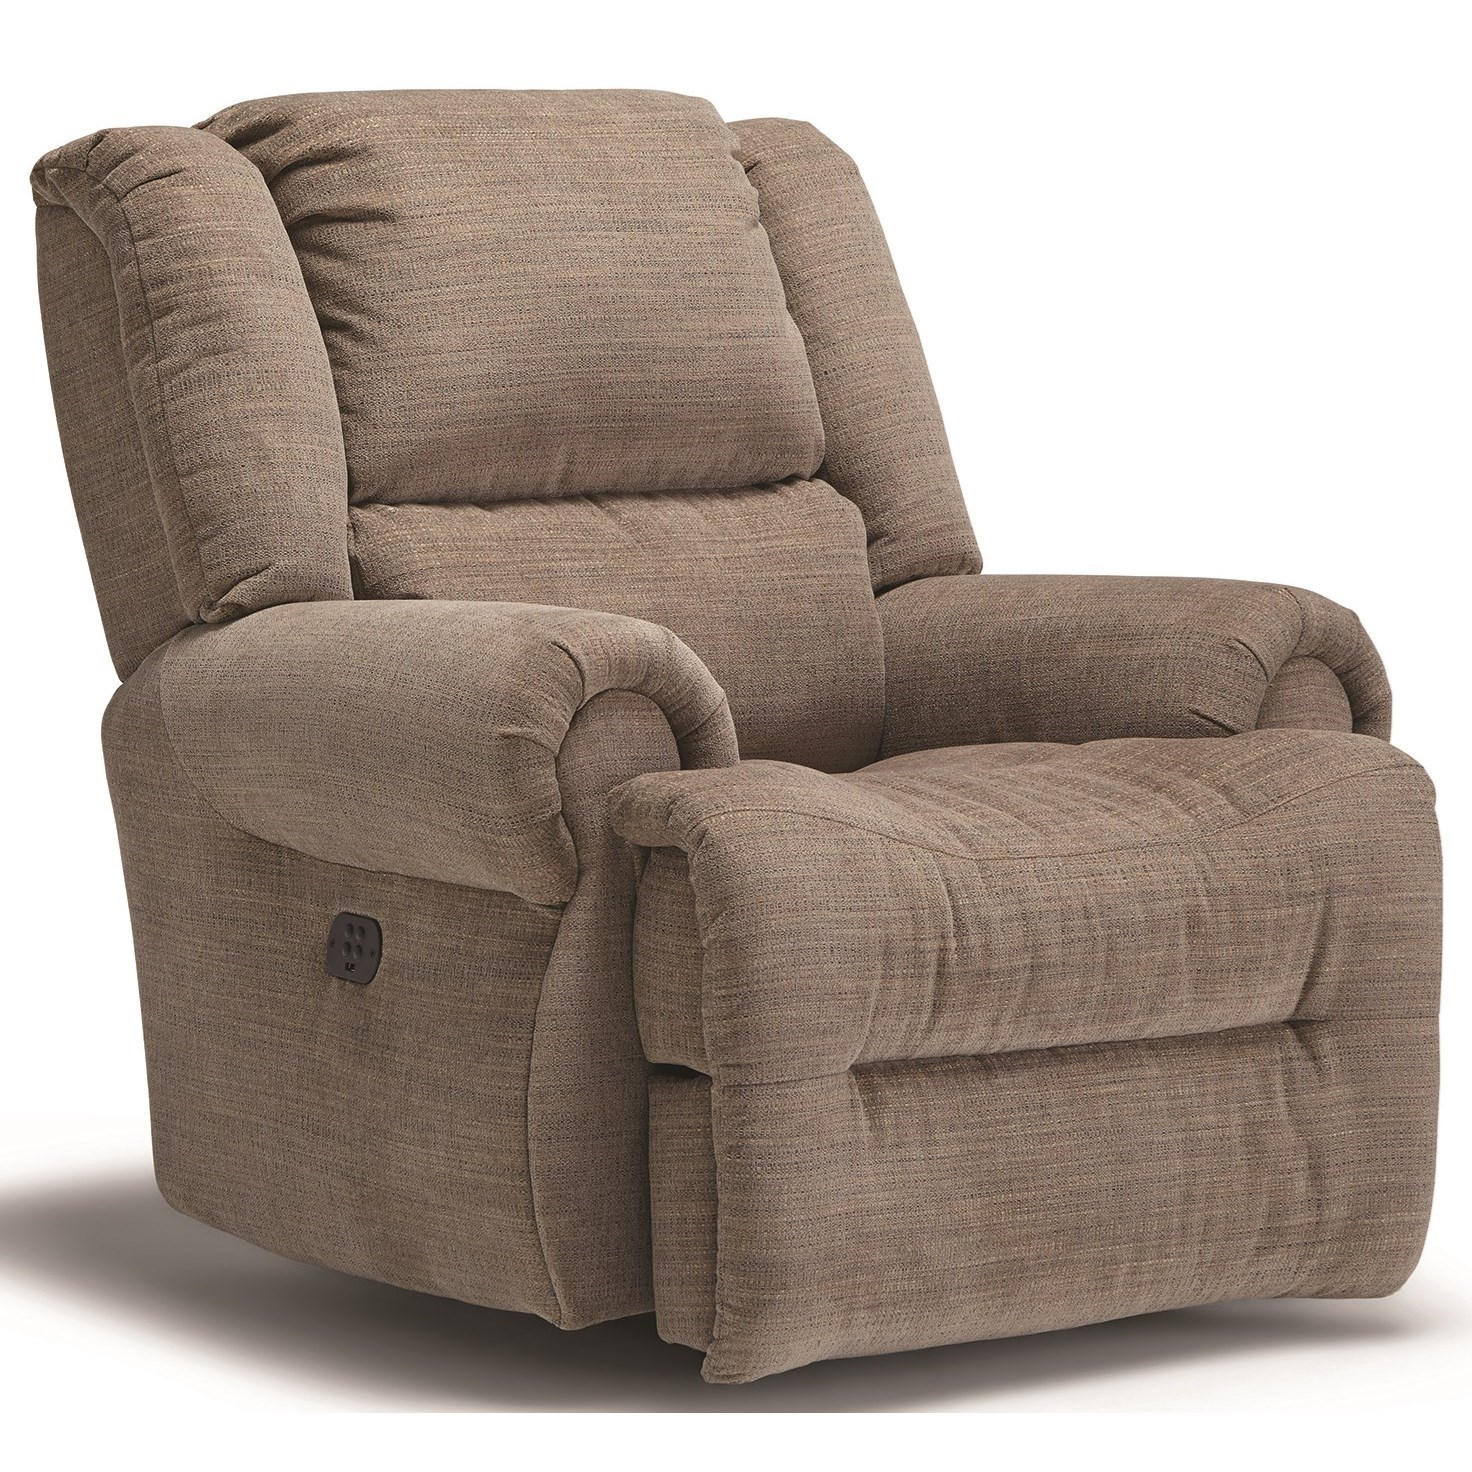 Genet Space Saver Recliner by Best Home Furnishings at Stuckey Furniture